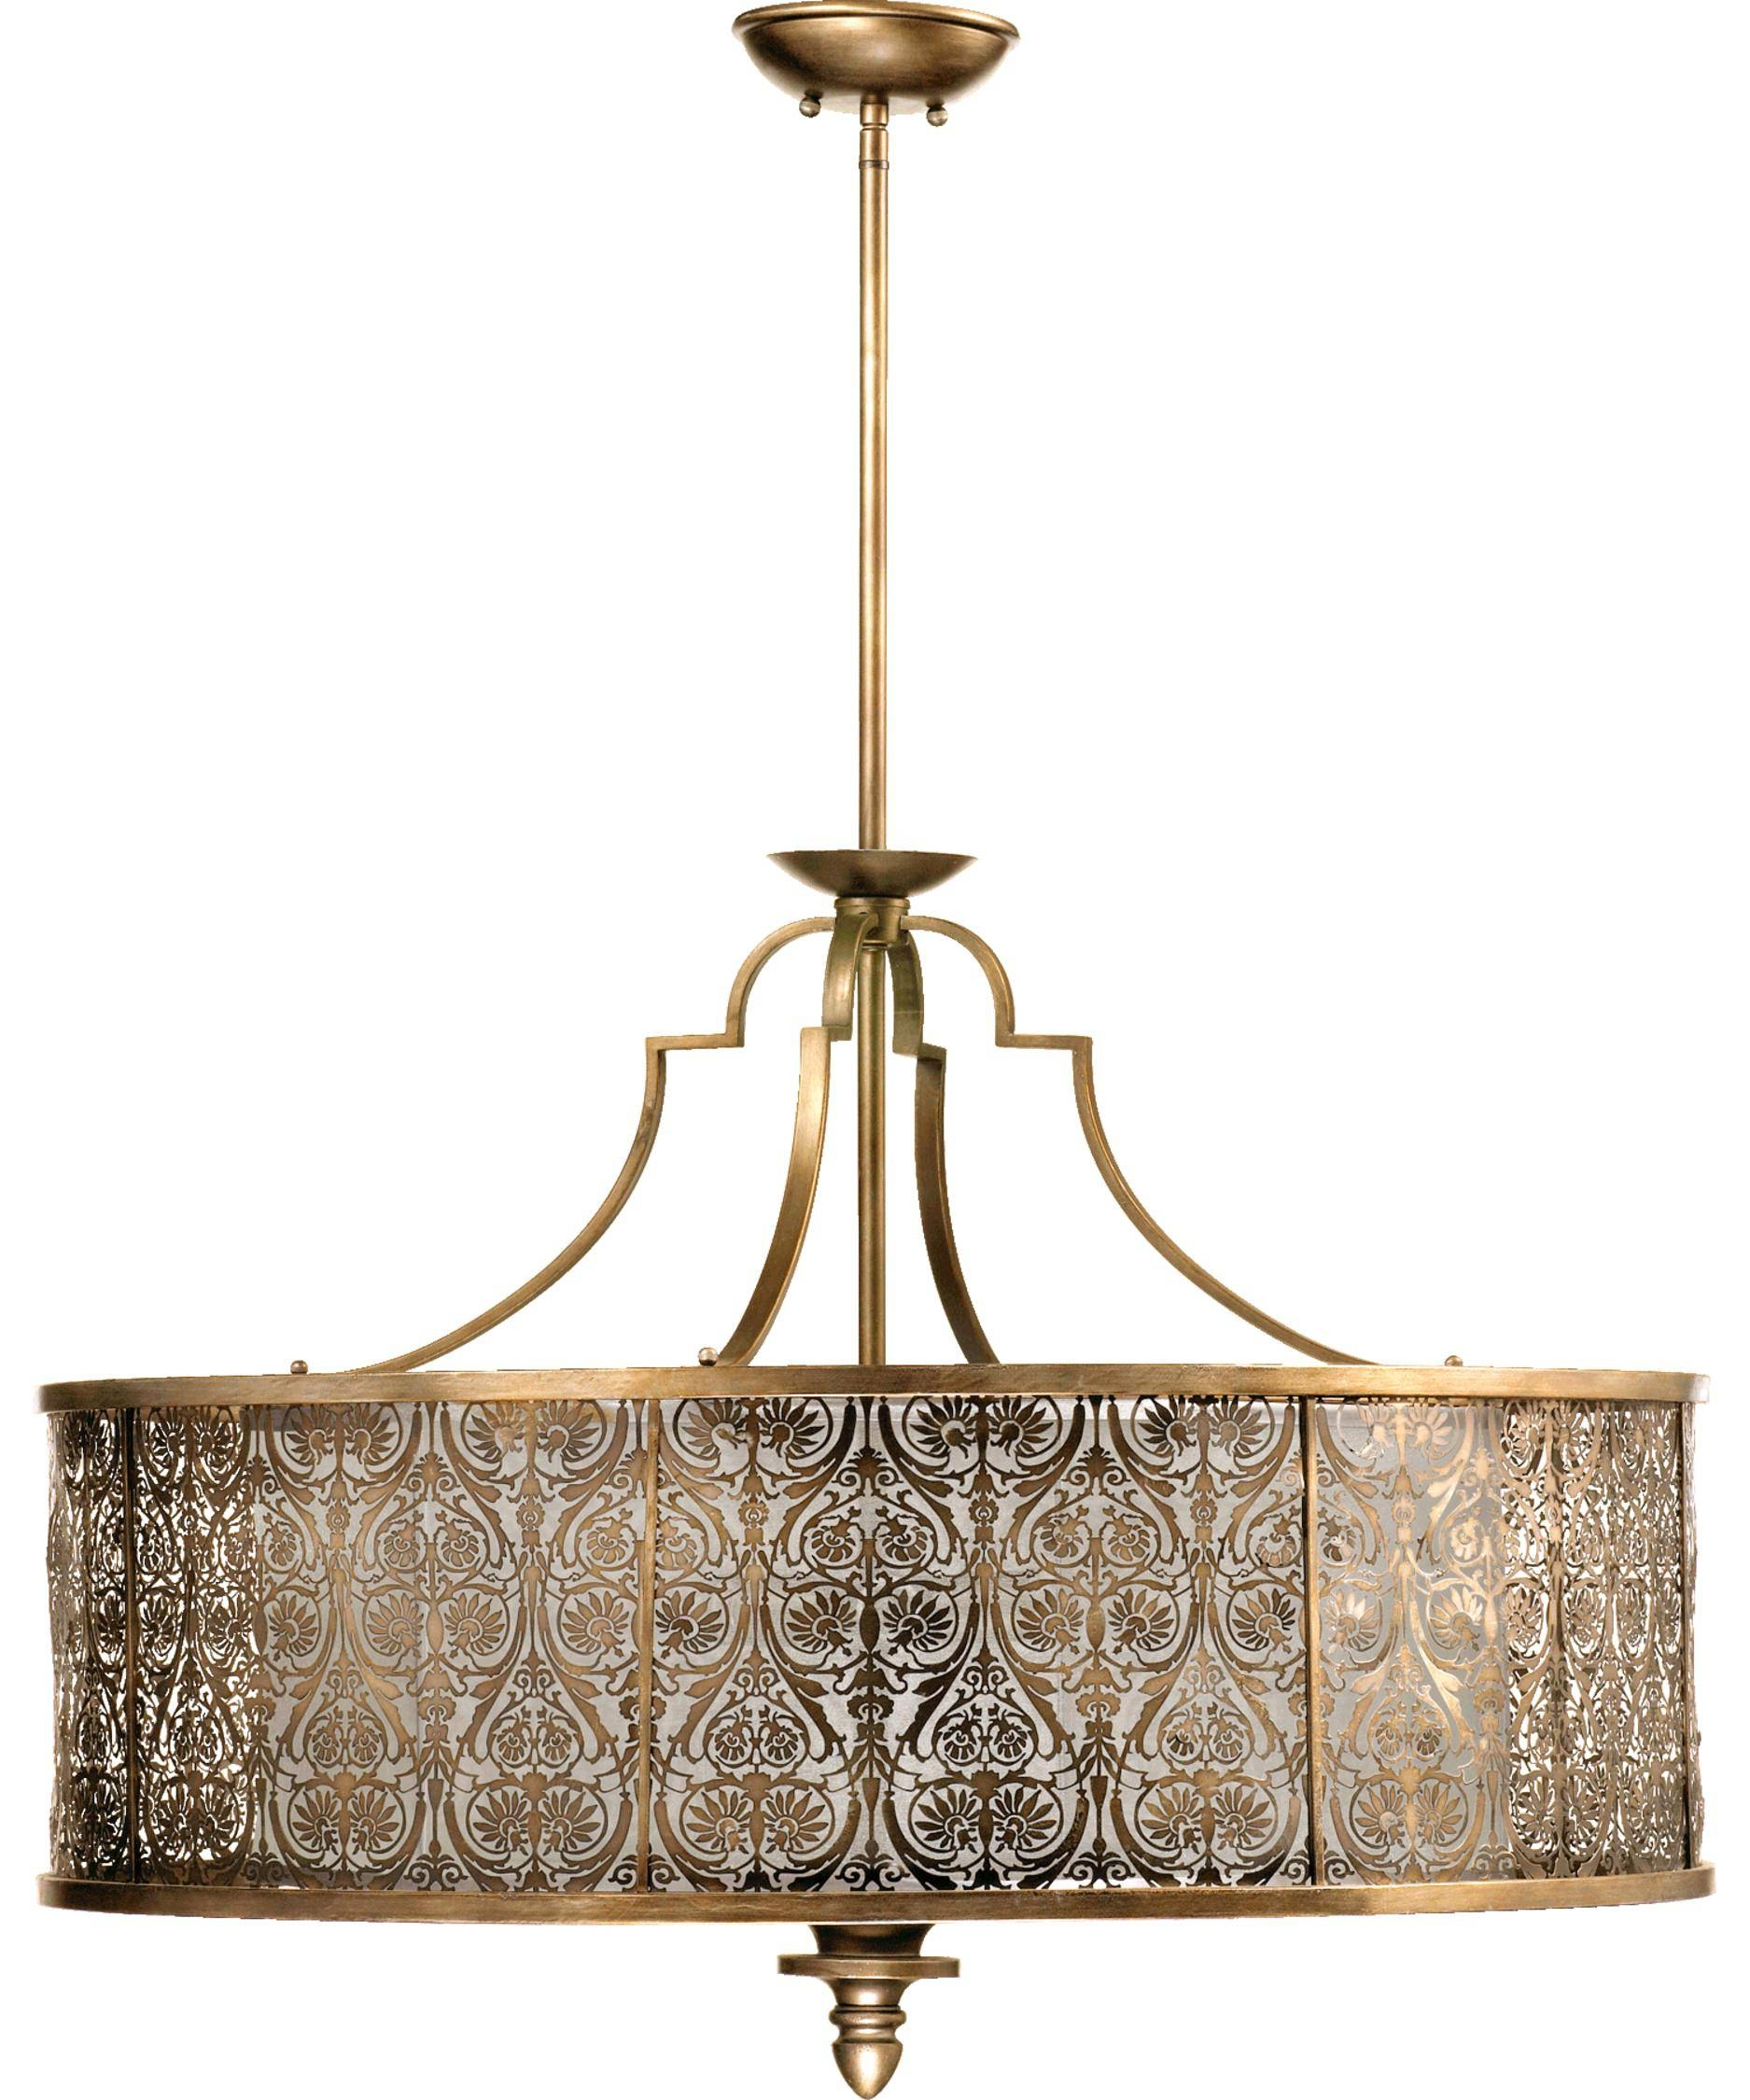 Quorum International 8197 5 French Damask 36 Inch Wide 5 Light Intended For Quorum Pendant Lights (View 9 of 15)